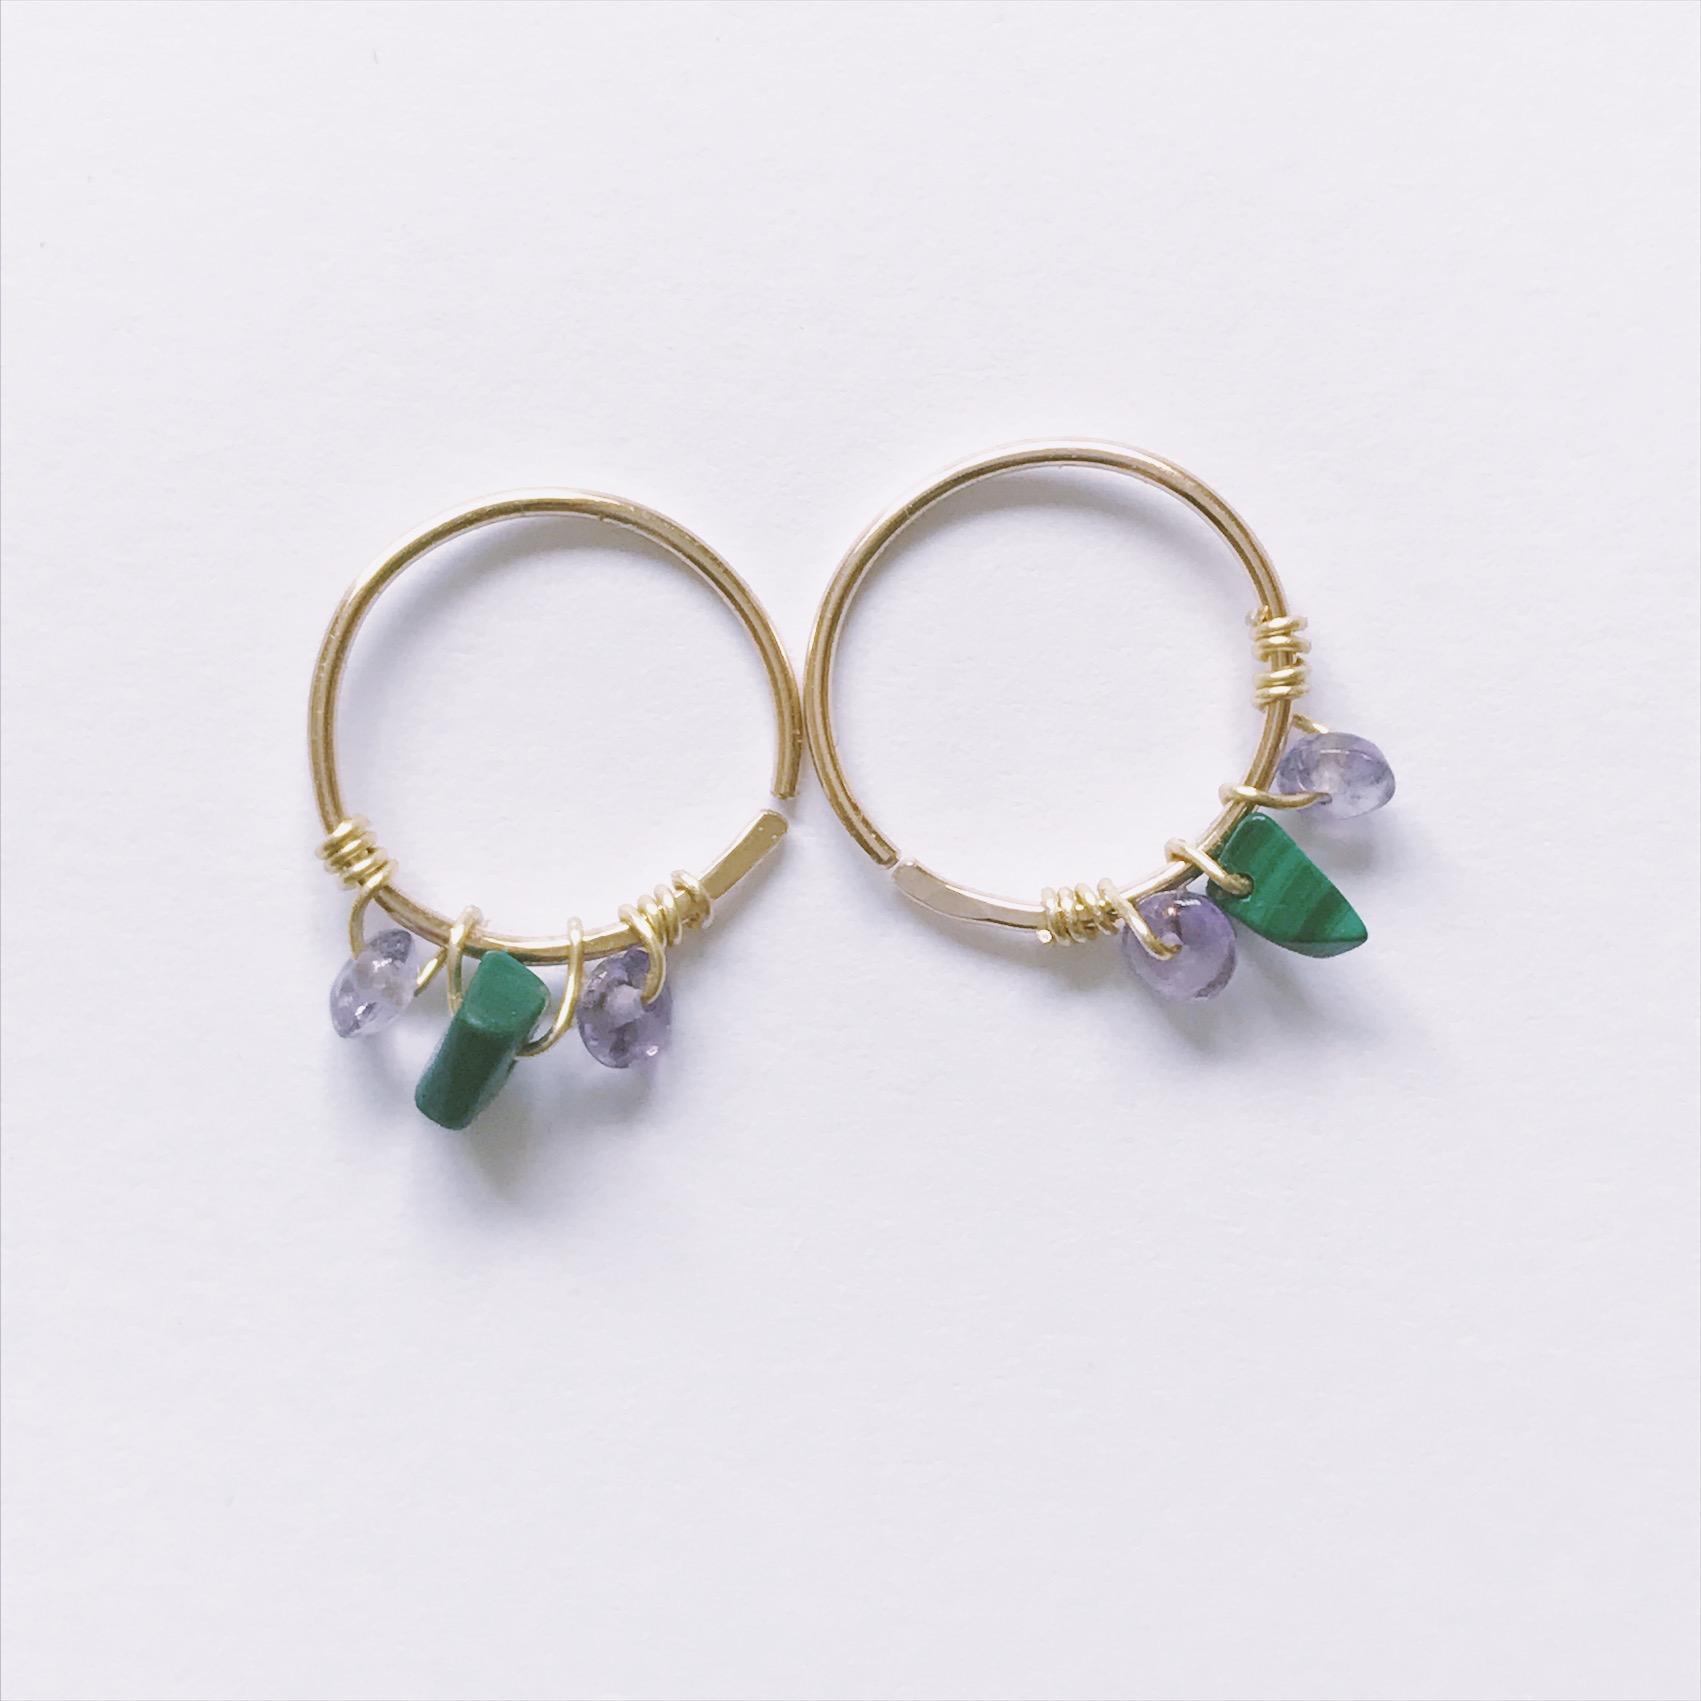 NEW Malachite & amethyst hoops is available to order now